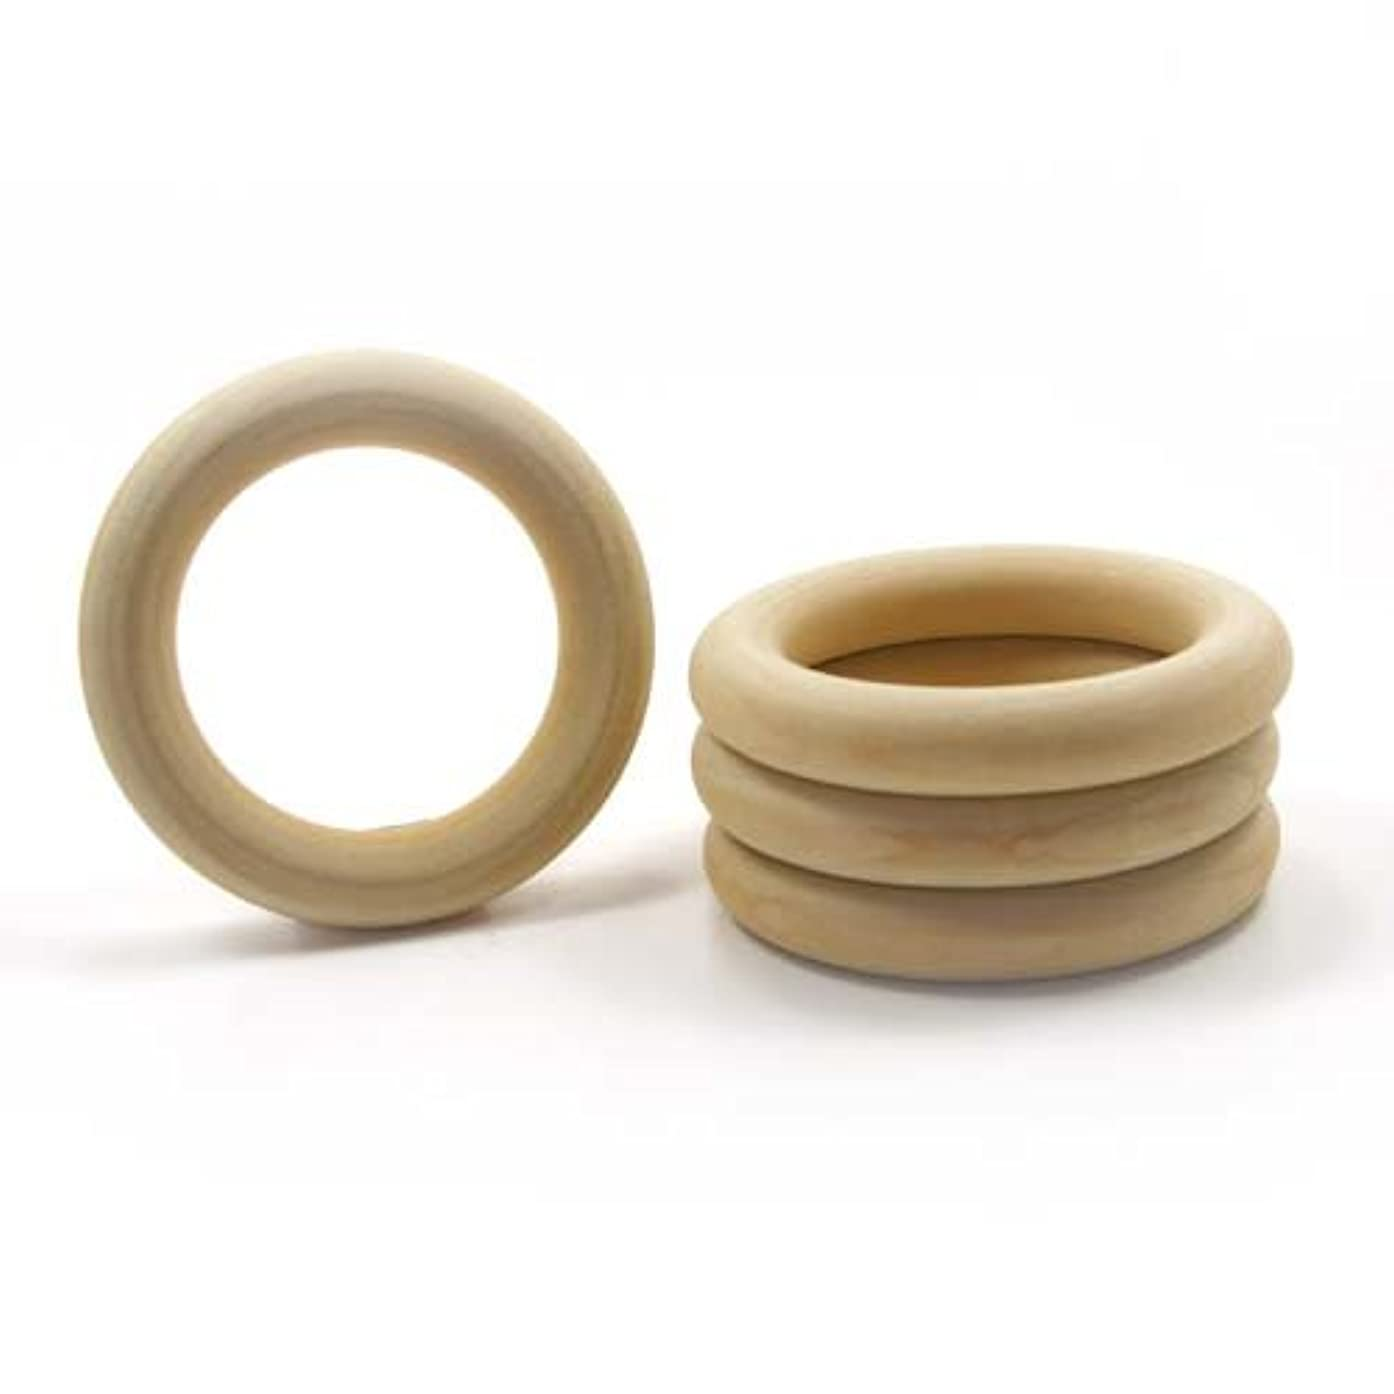 Mylittlewoodshop Pkg of 25 - Ring - 1-1/2 inch outside diameter with 3/4 inches inside diameter and 3/8 inches thick unfinished wood (WW-TR0400-26)